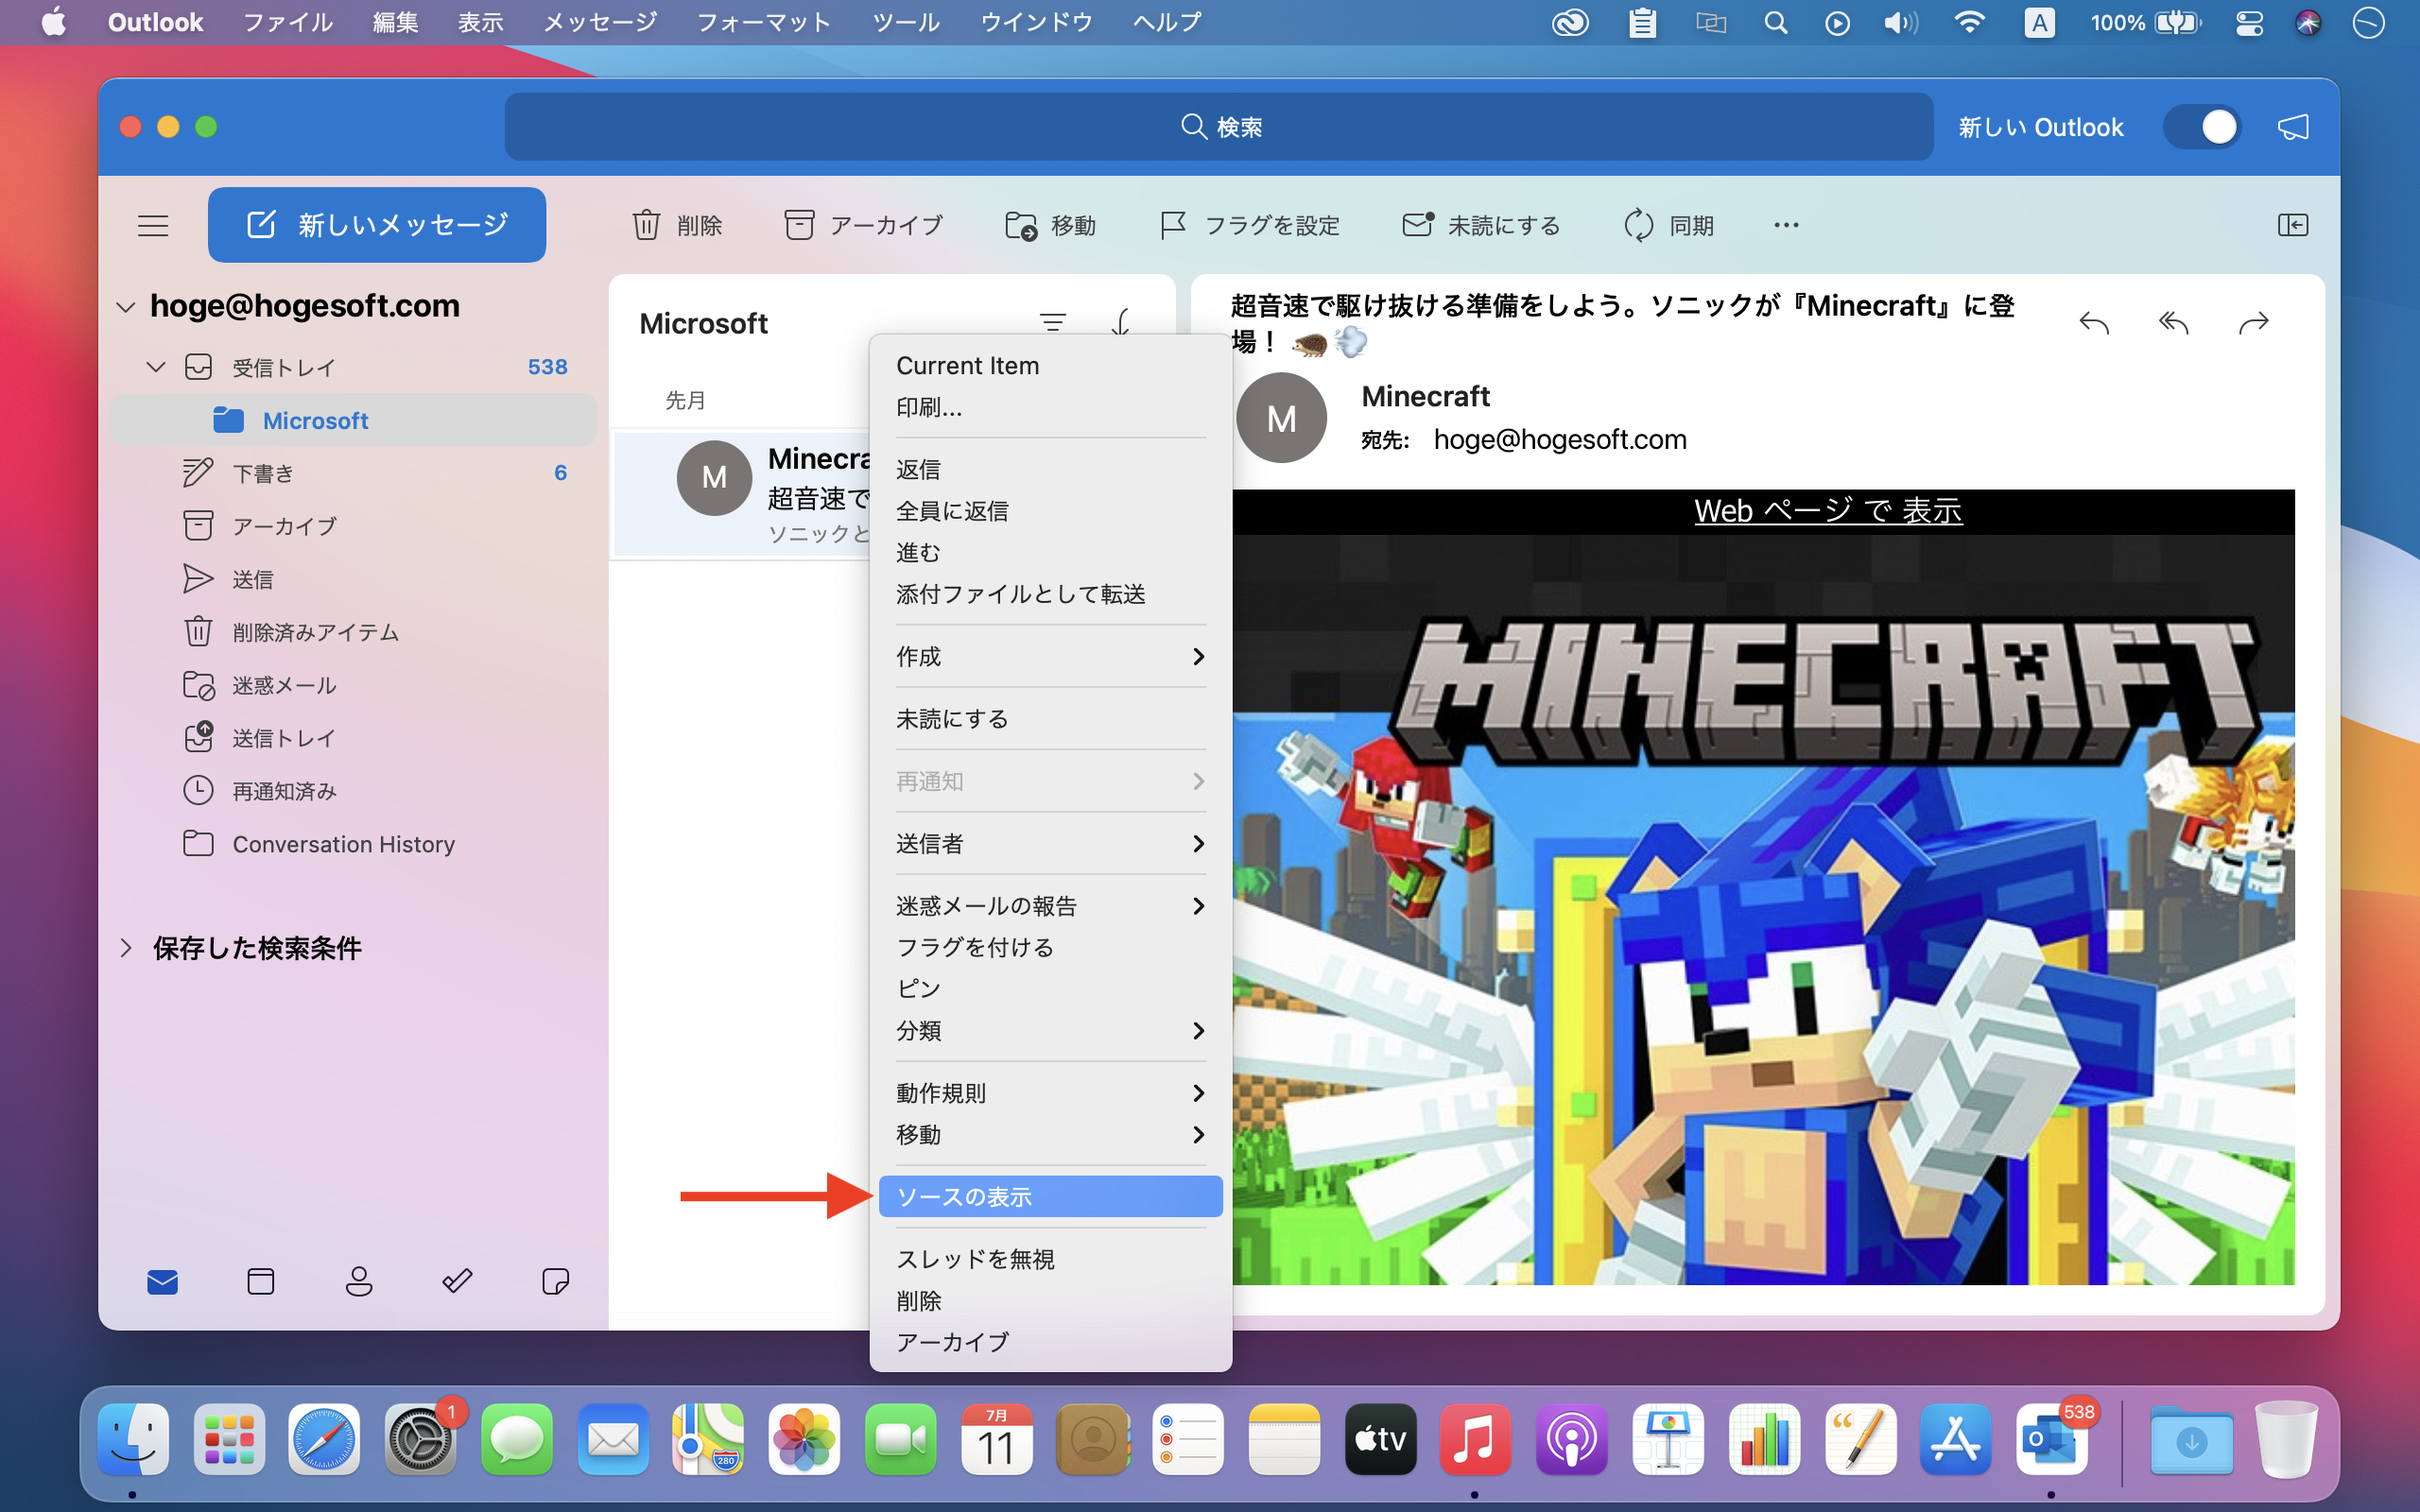 Outlook for Mac View source